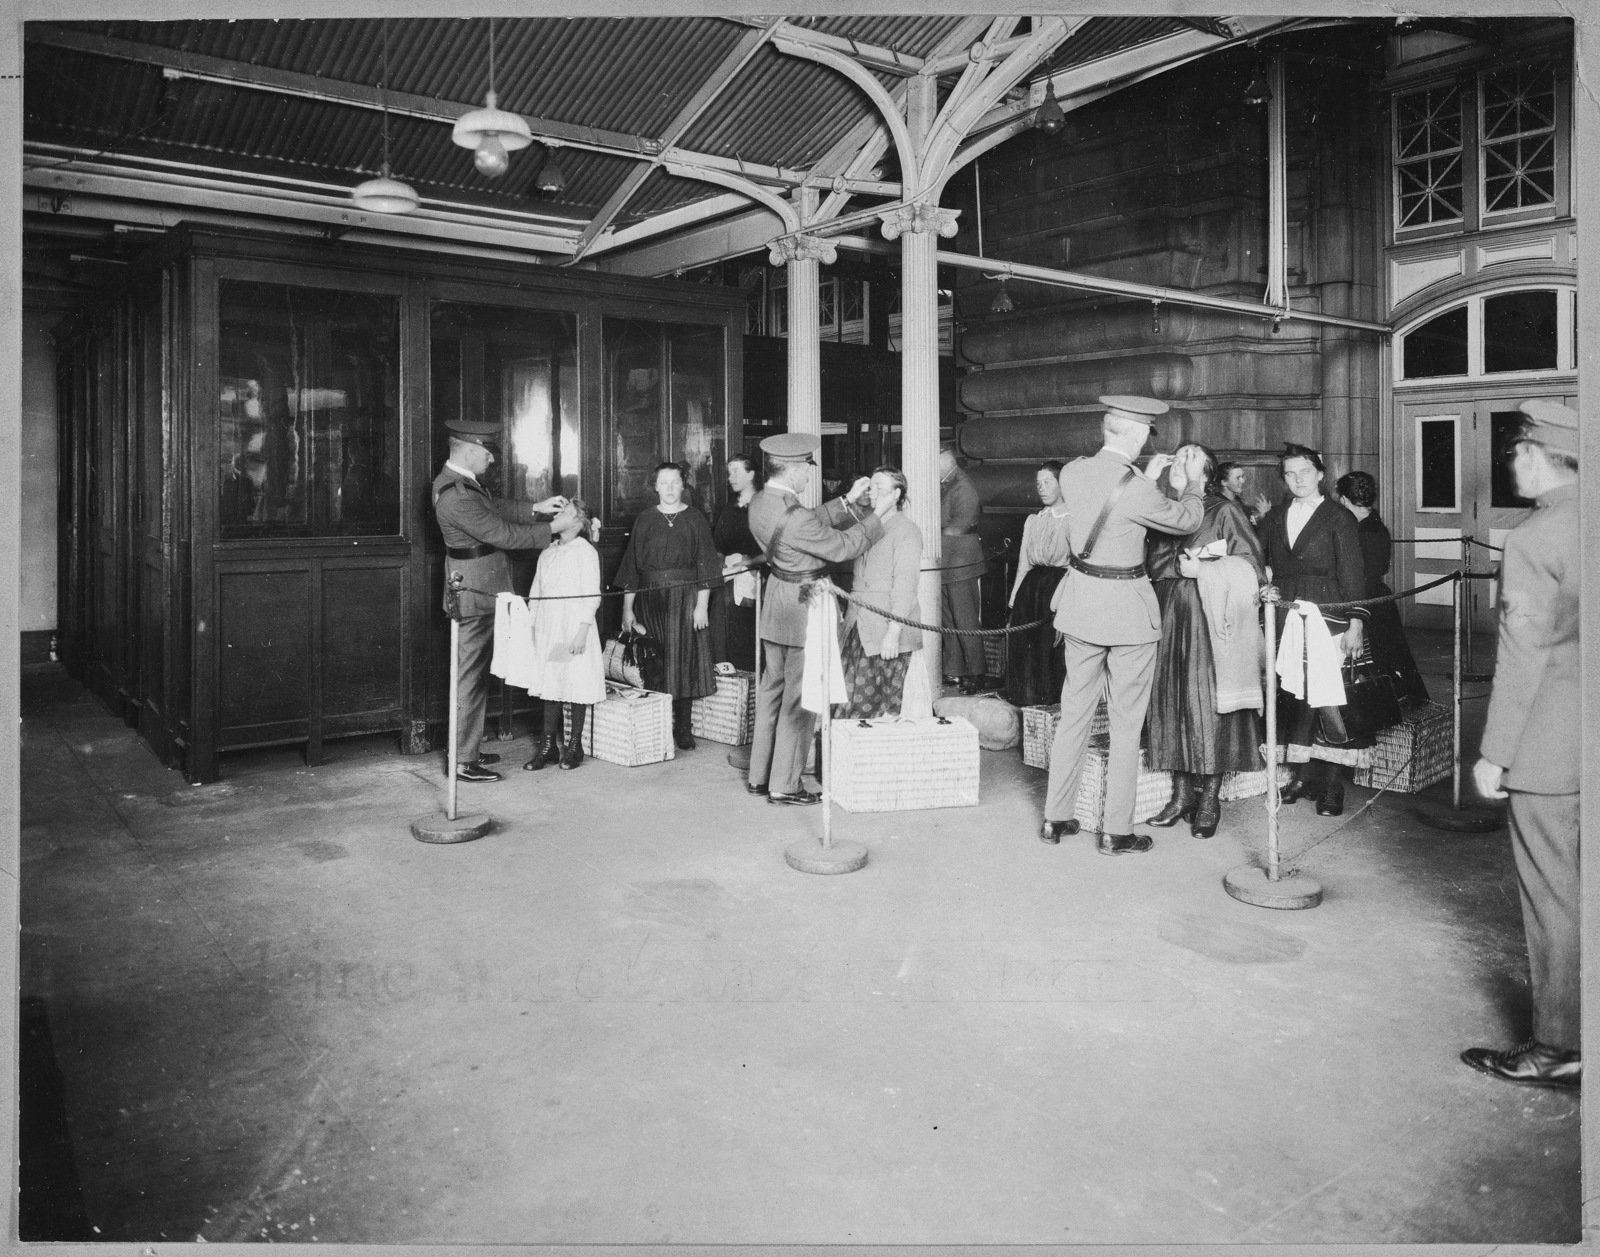 Ellis Island, N.Y. Line Inspection of Arriving Aliens, 1923, NARA ARCweb, In Copyright